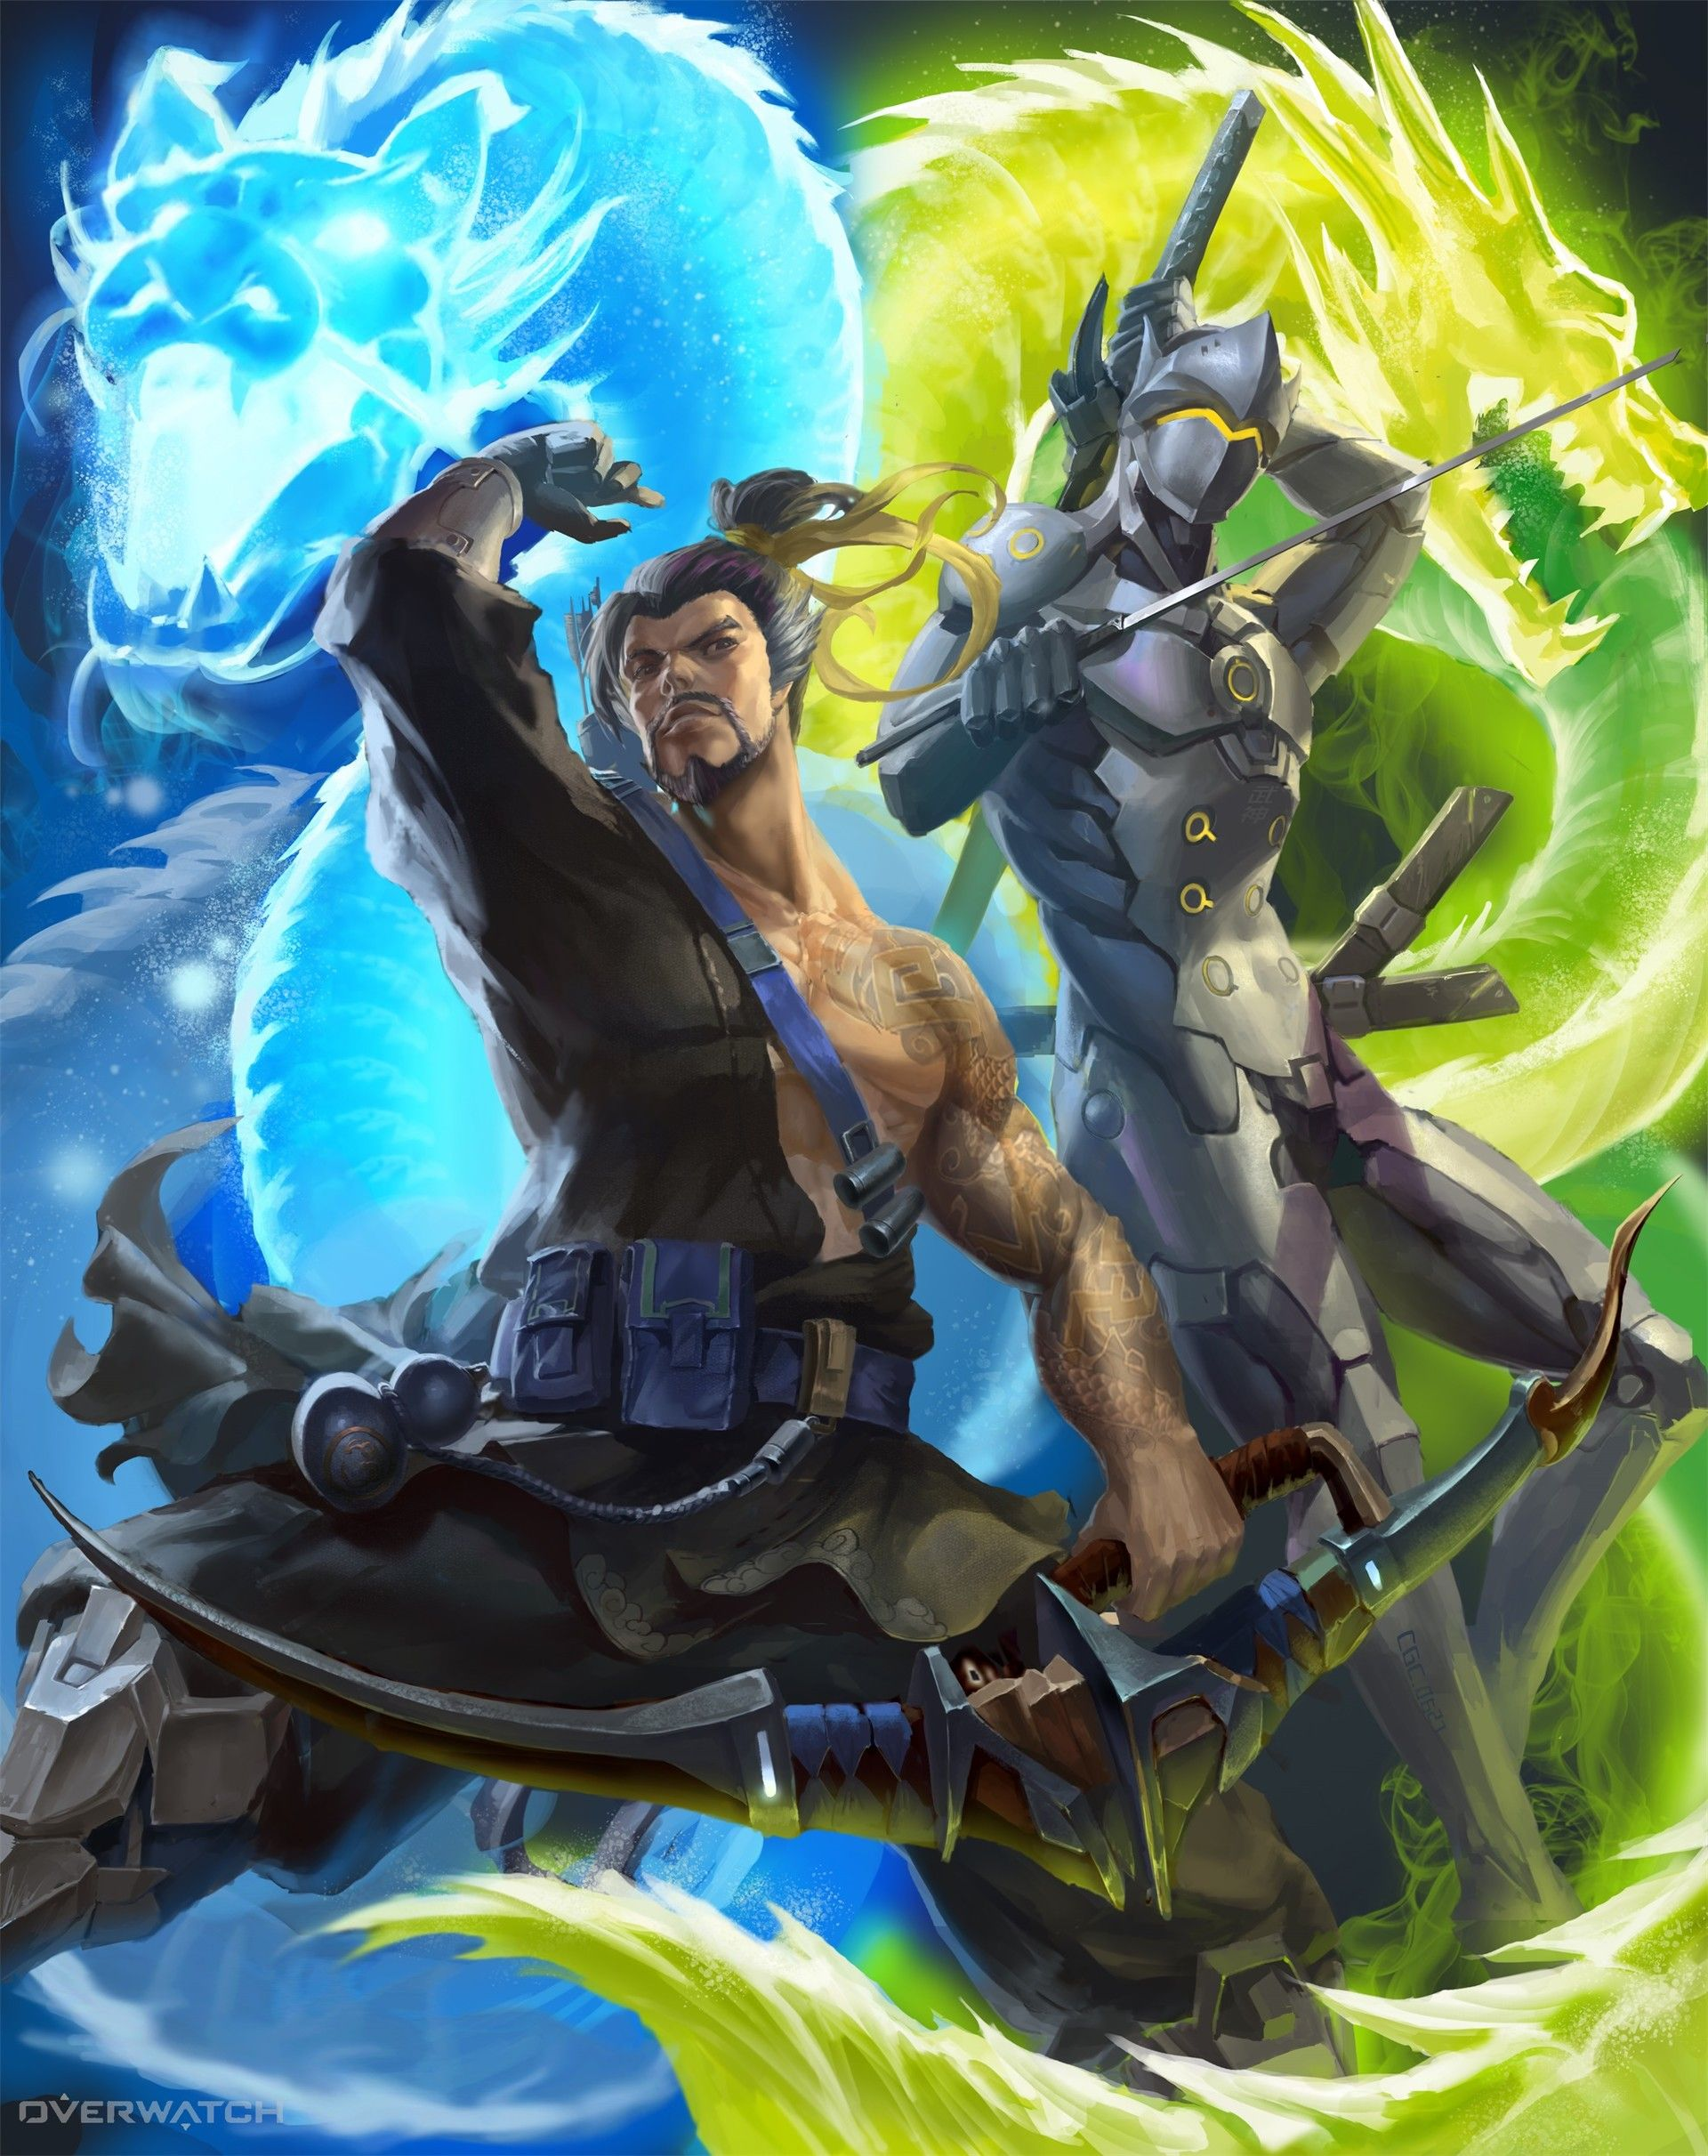 ArtStation - Overwatch: Double Dragon brothers, Chen Gang